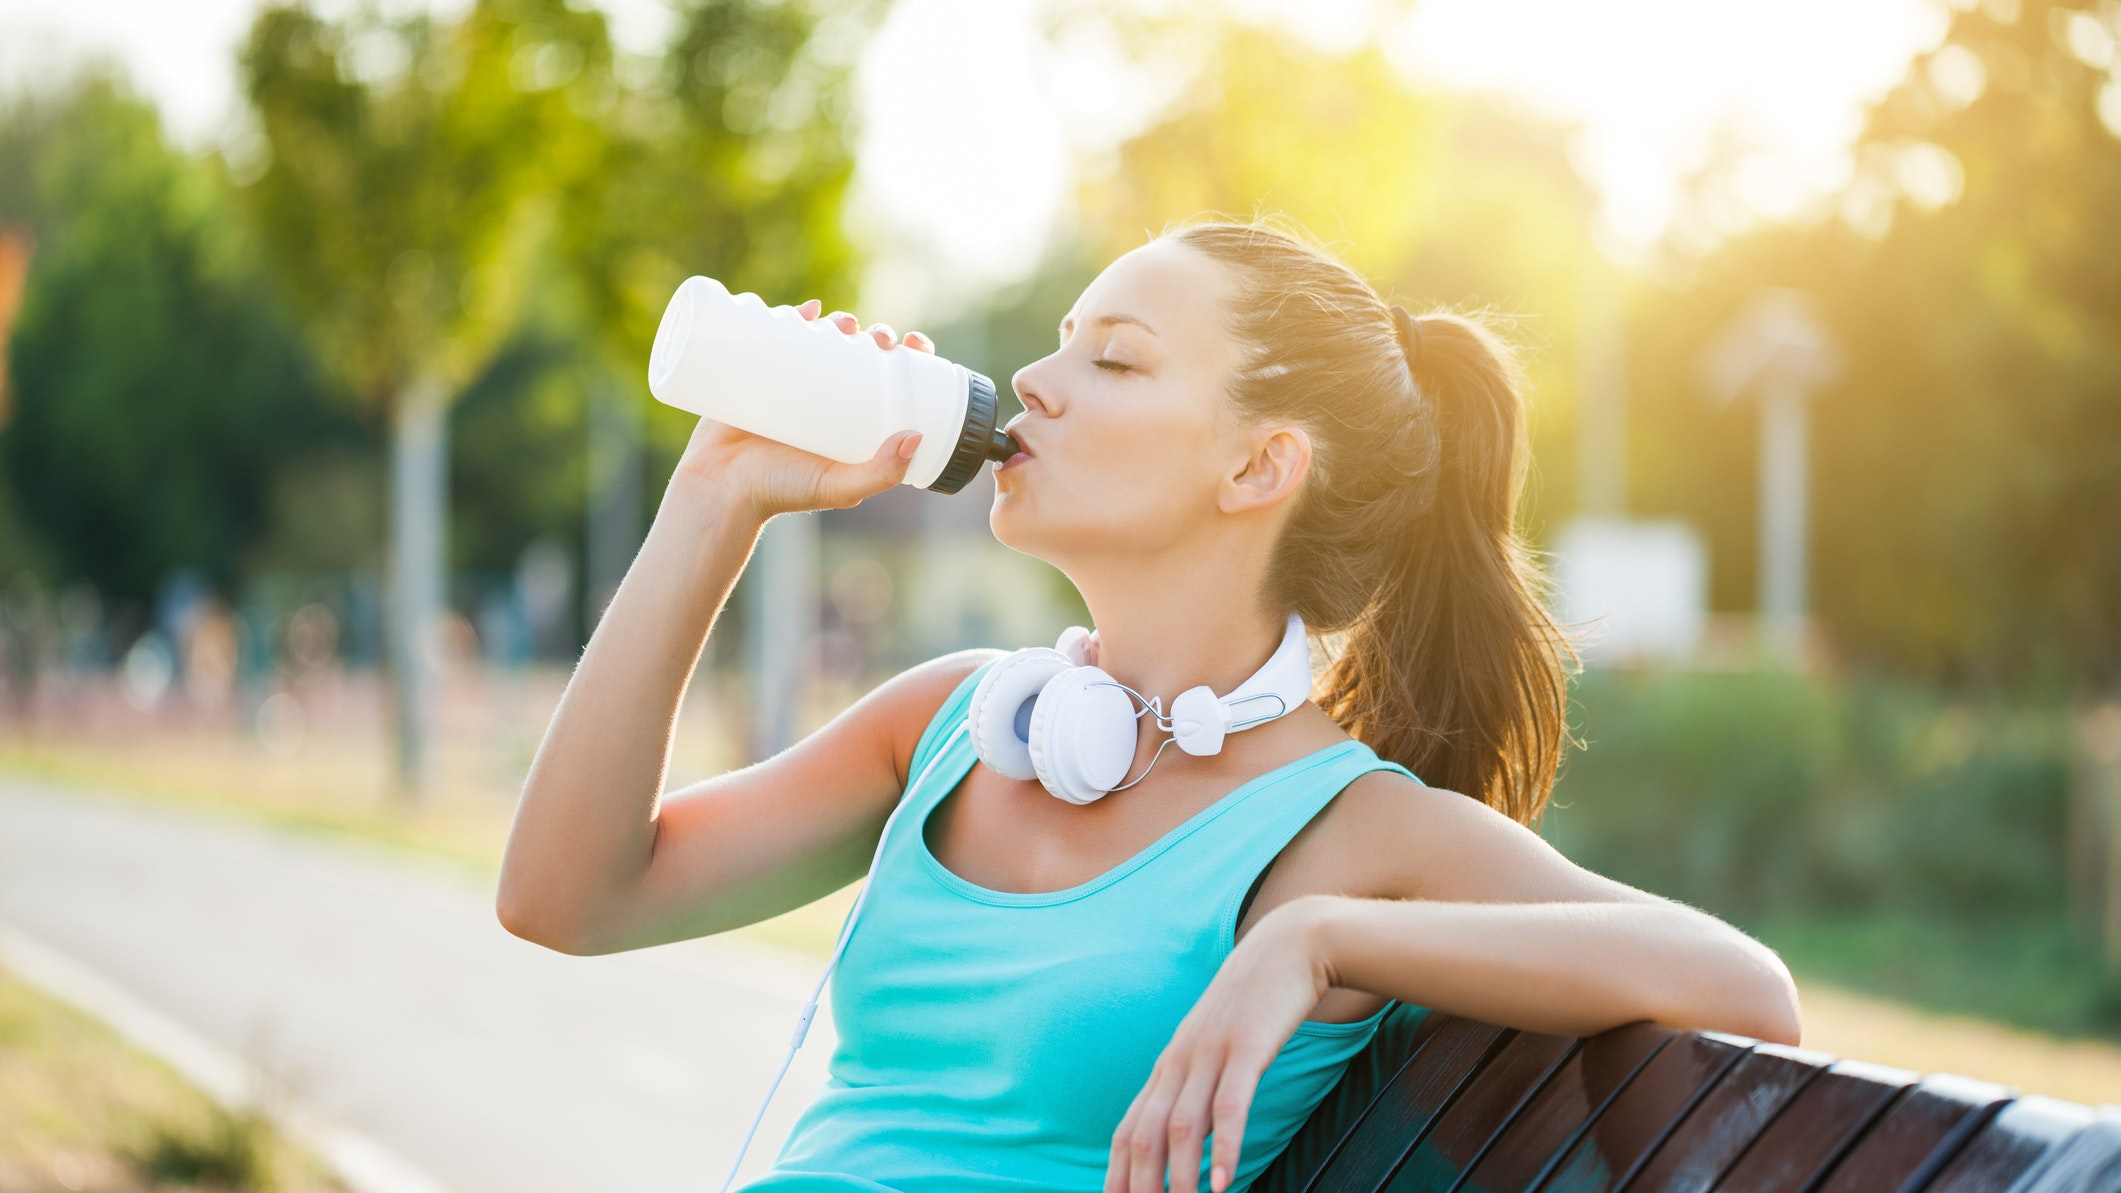 drink-water Get Healthy Clear Skin With These 5 Simple Tips